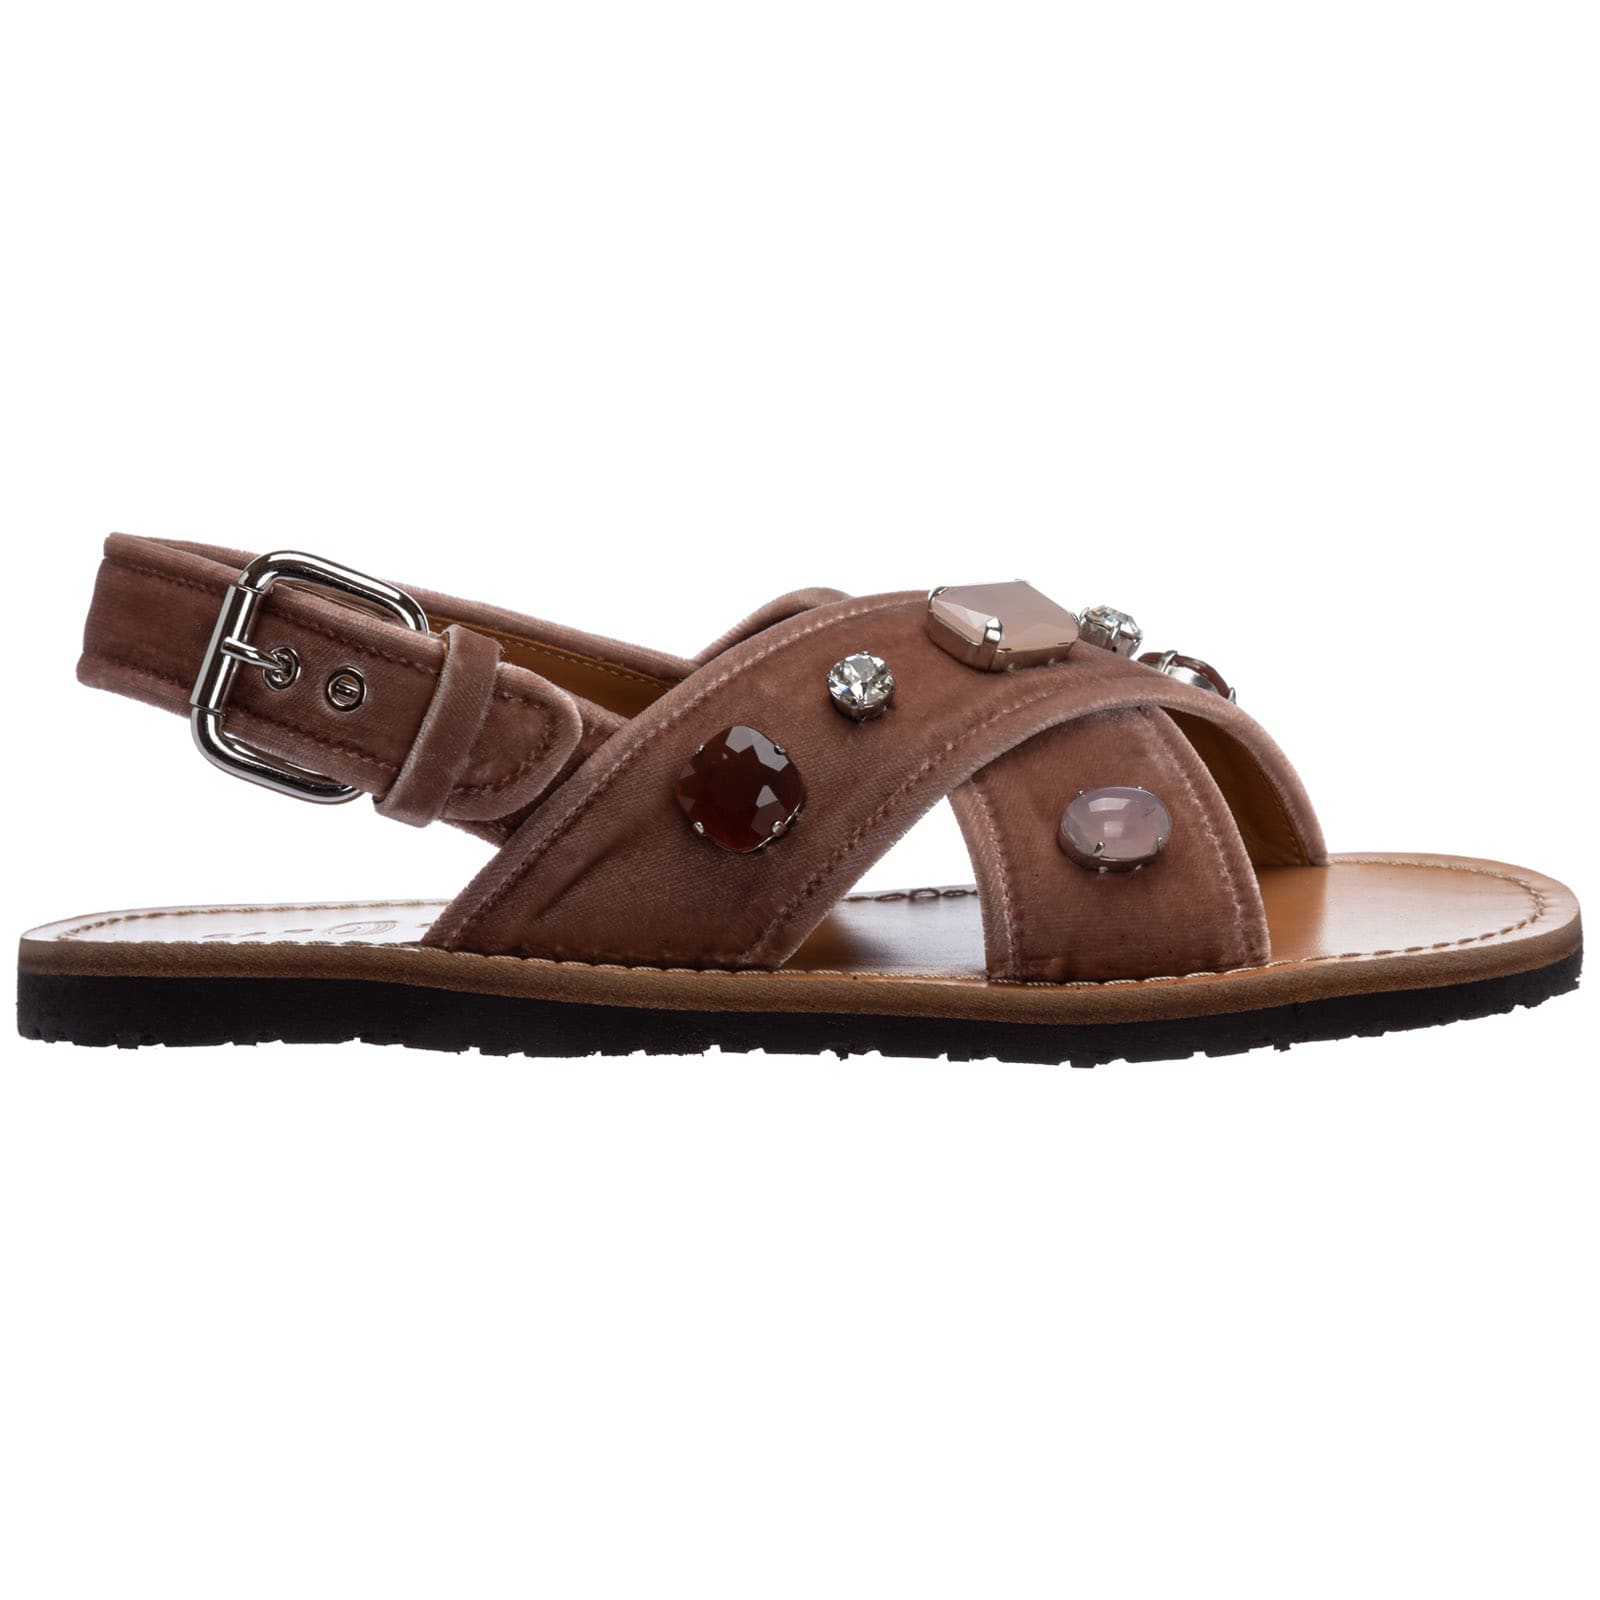 Car Shoe Olympia Sandals